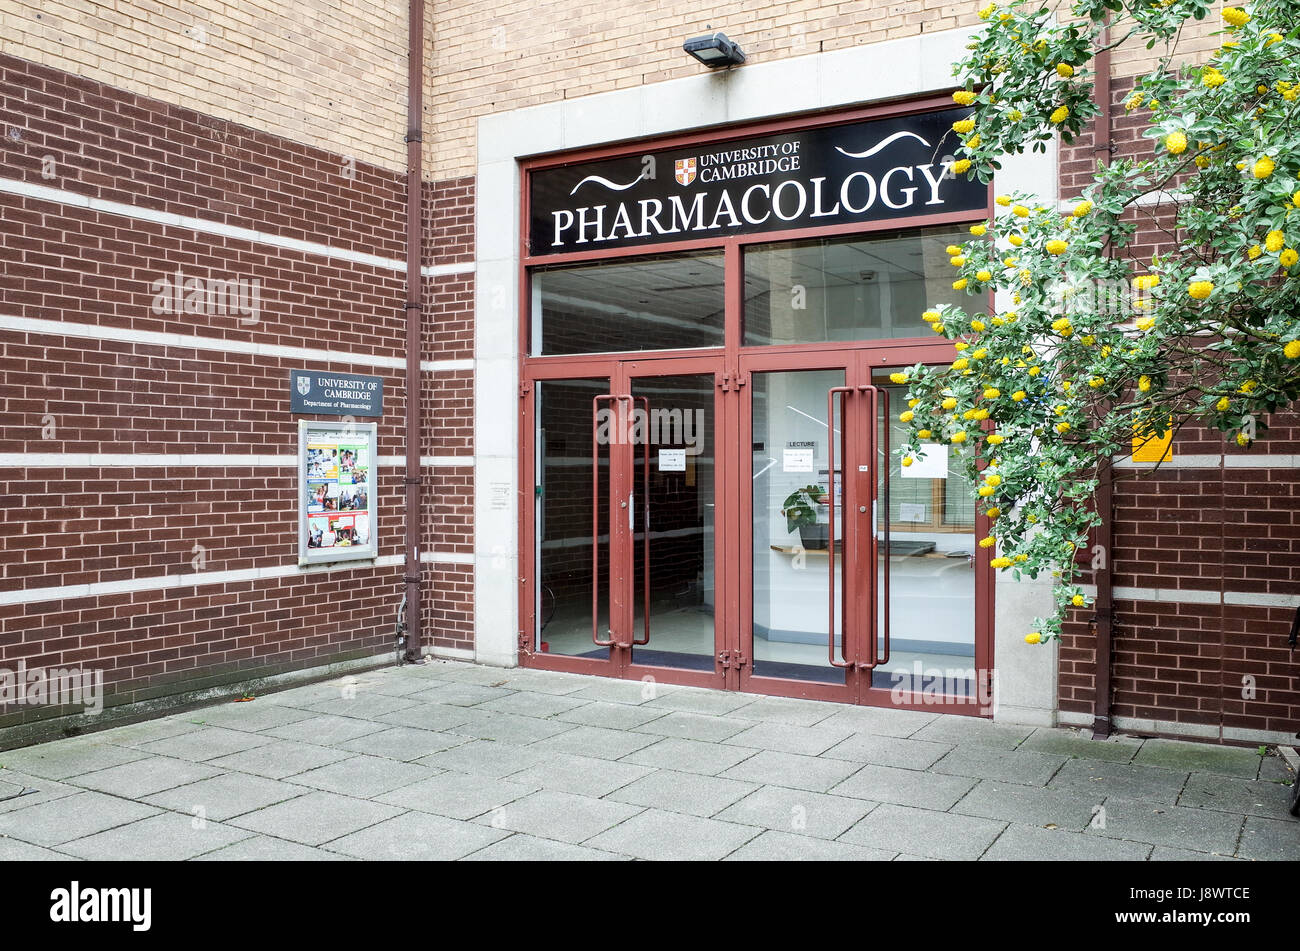 Entrance to the Department of Pharmacology at the University of Cambridge, UK - Stock Image